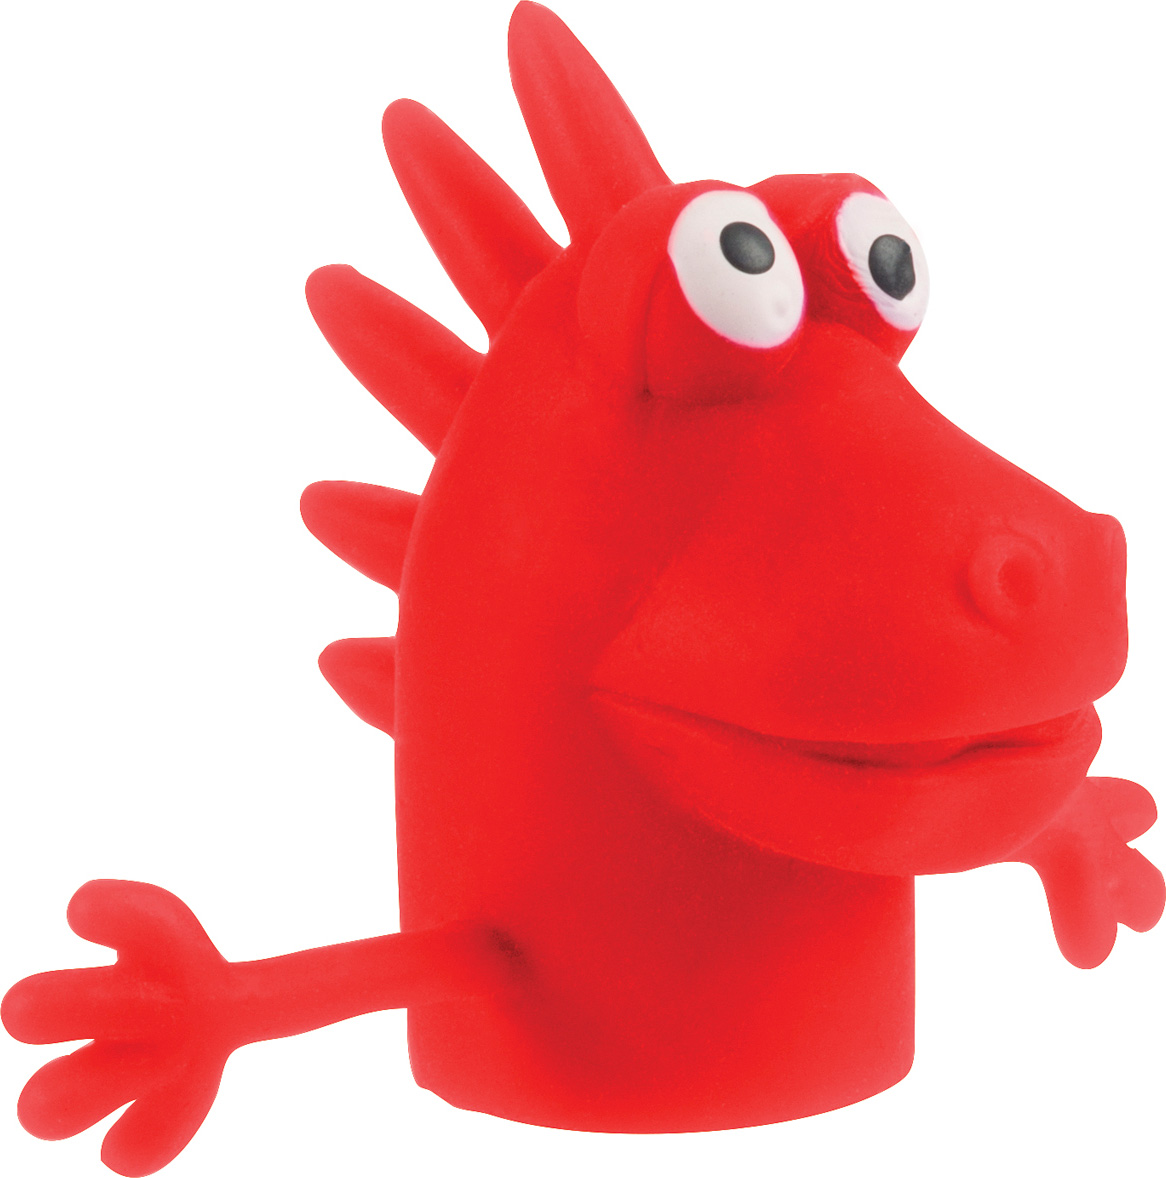 Squishy Fngr Puppet Monsters G Willikers